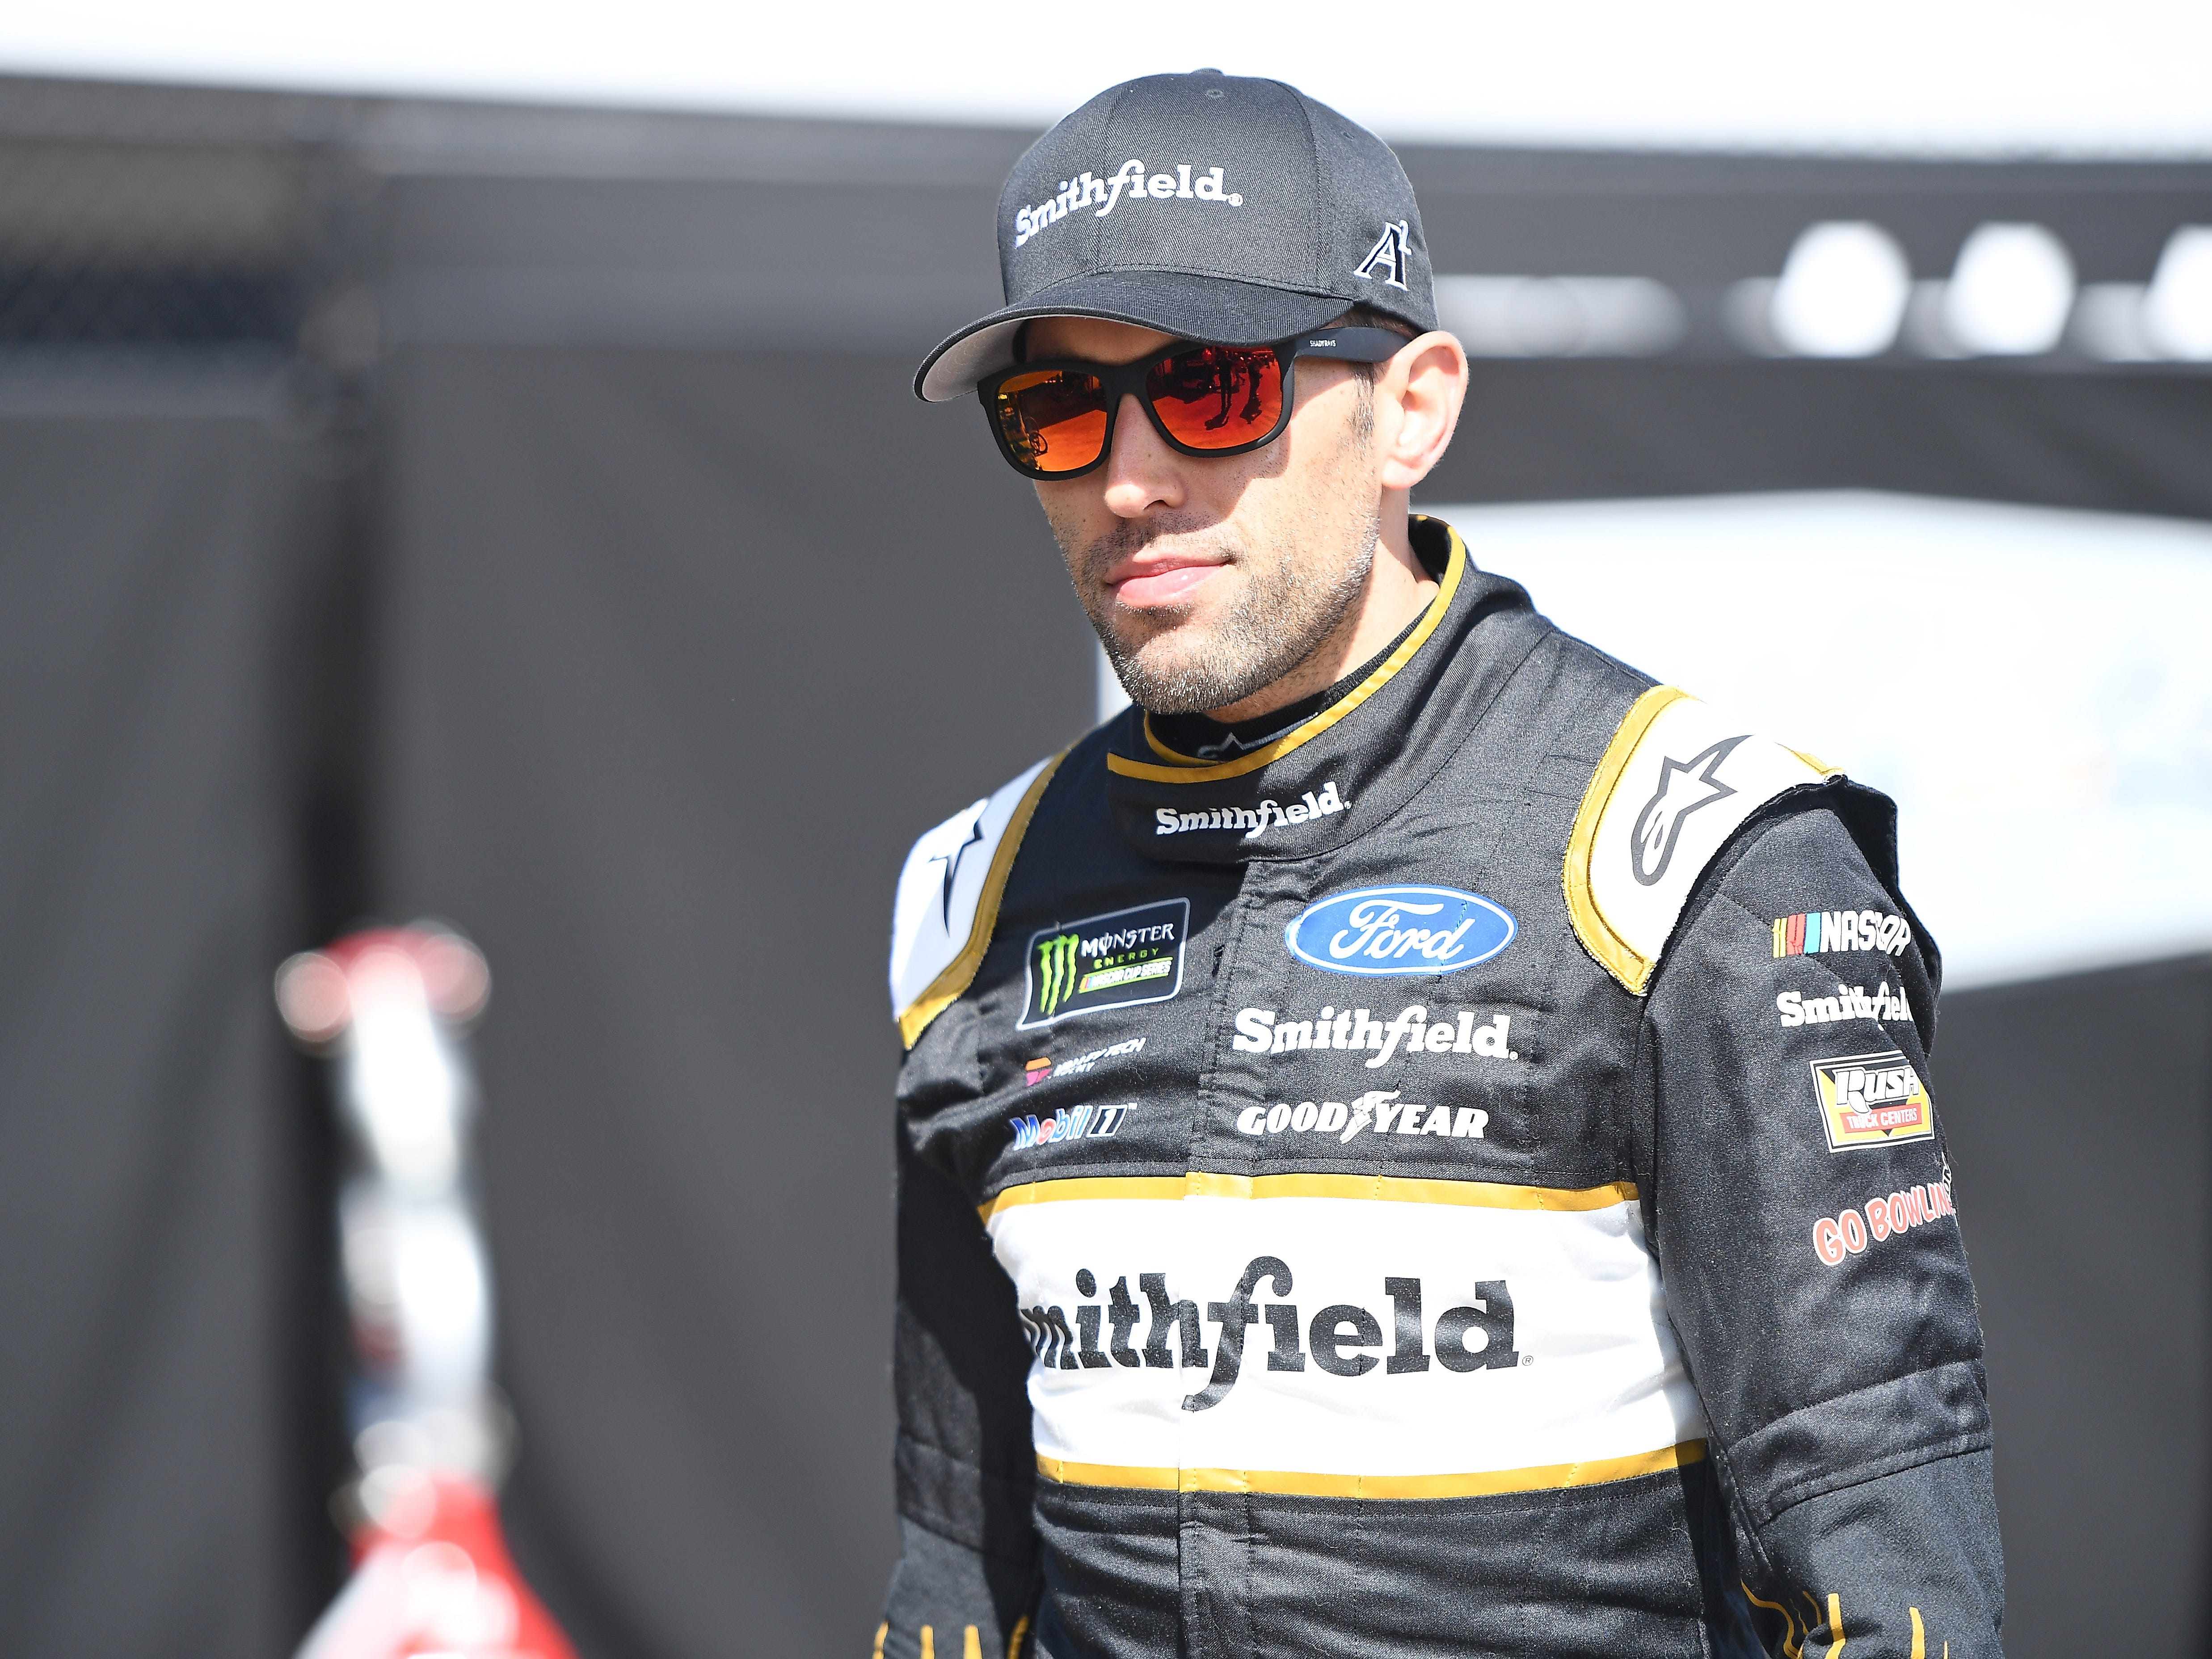 AVONDALE, AZ - MARCH 08:  Aric Almirola, driver of the #10 Smithfield Ford, walks his car during practice for the Monster Energy NASCAR Cup Series TicketGuardian 500 at ISM Raceway on March 8, 2019 in Avondale, Arizona.